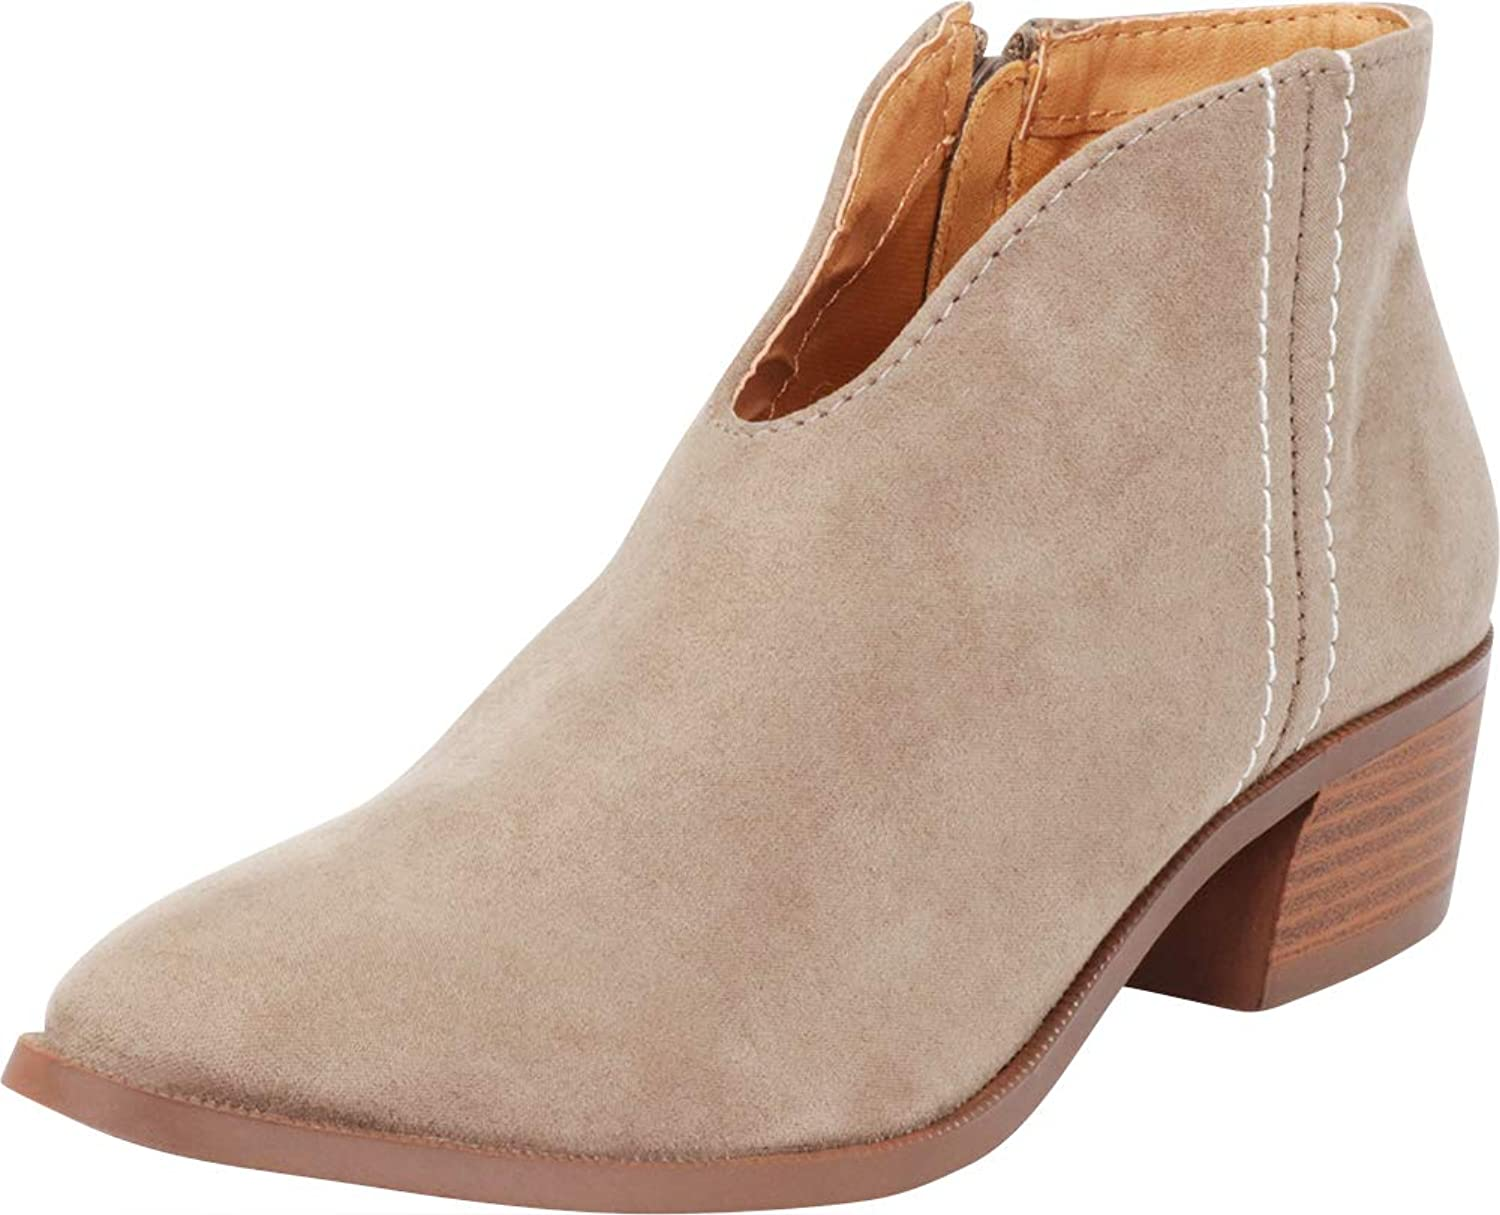 Cambridge Select Women's Western Front V Slit Chunky Stacked Block Heel Ankle Bootie